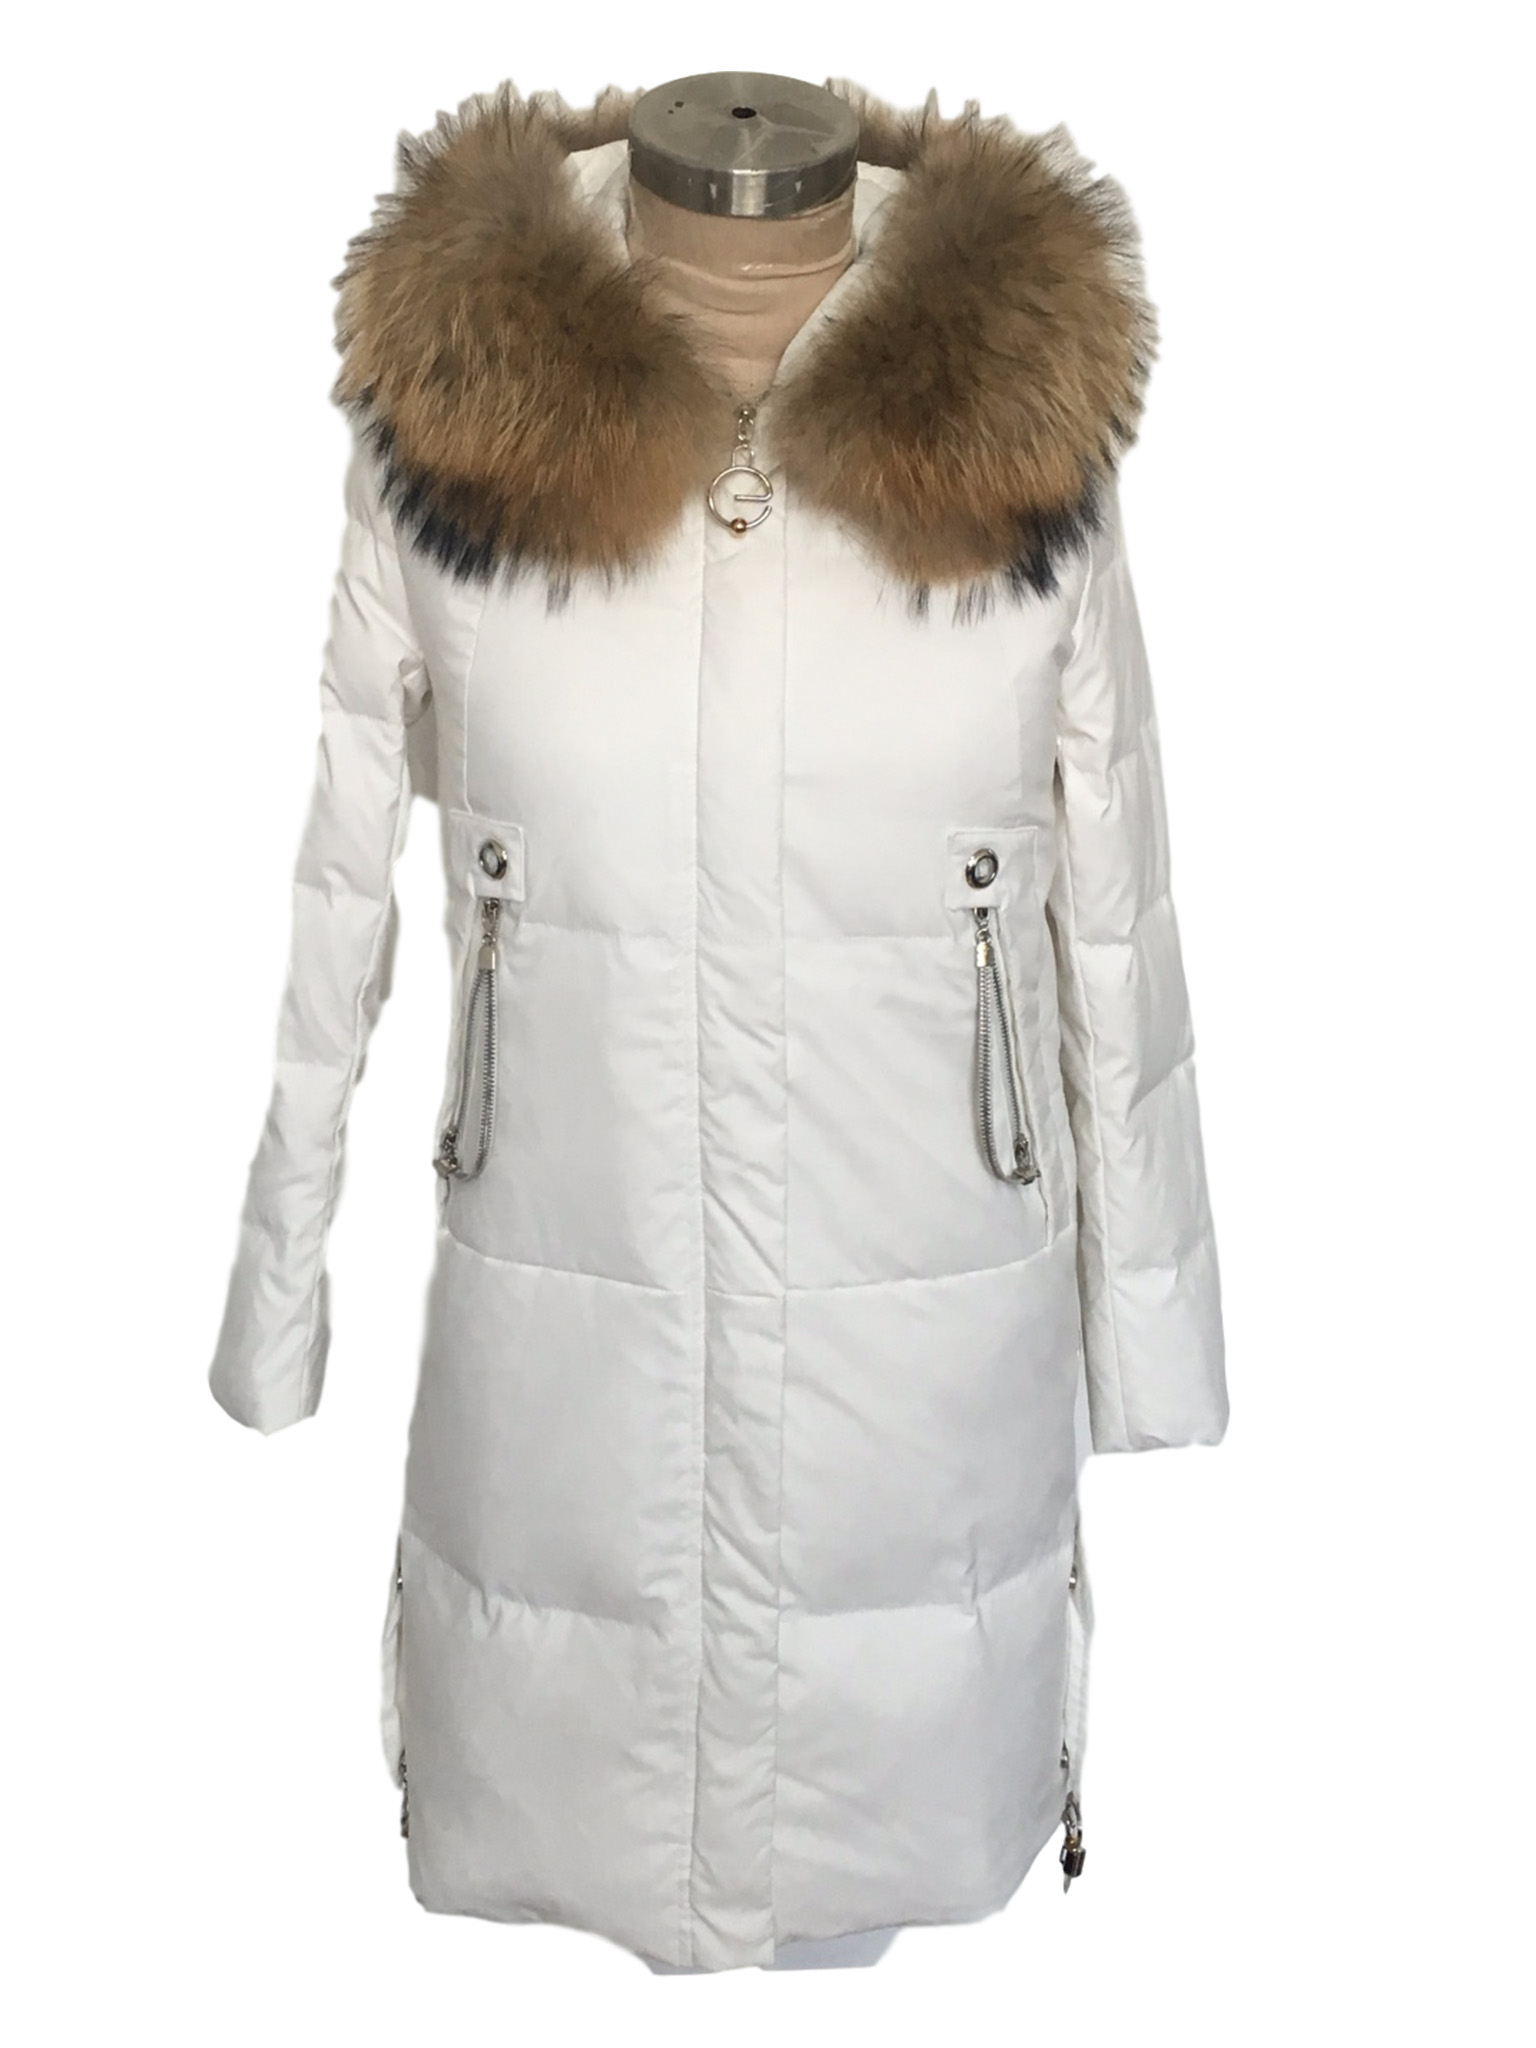 ultra light down jacket women,down jacket women,mens down jacket,down coat women,Huarui export